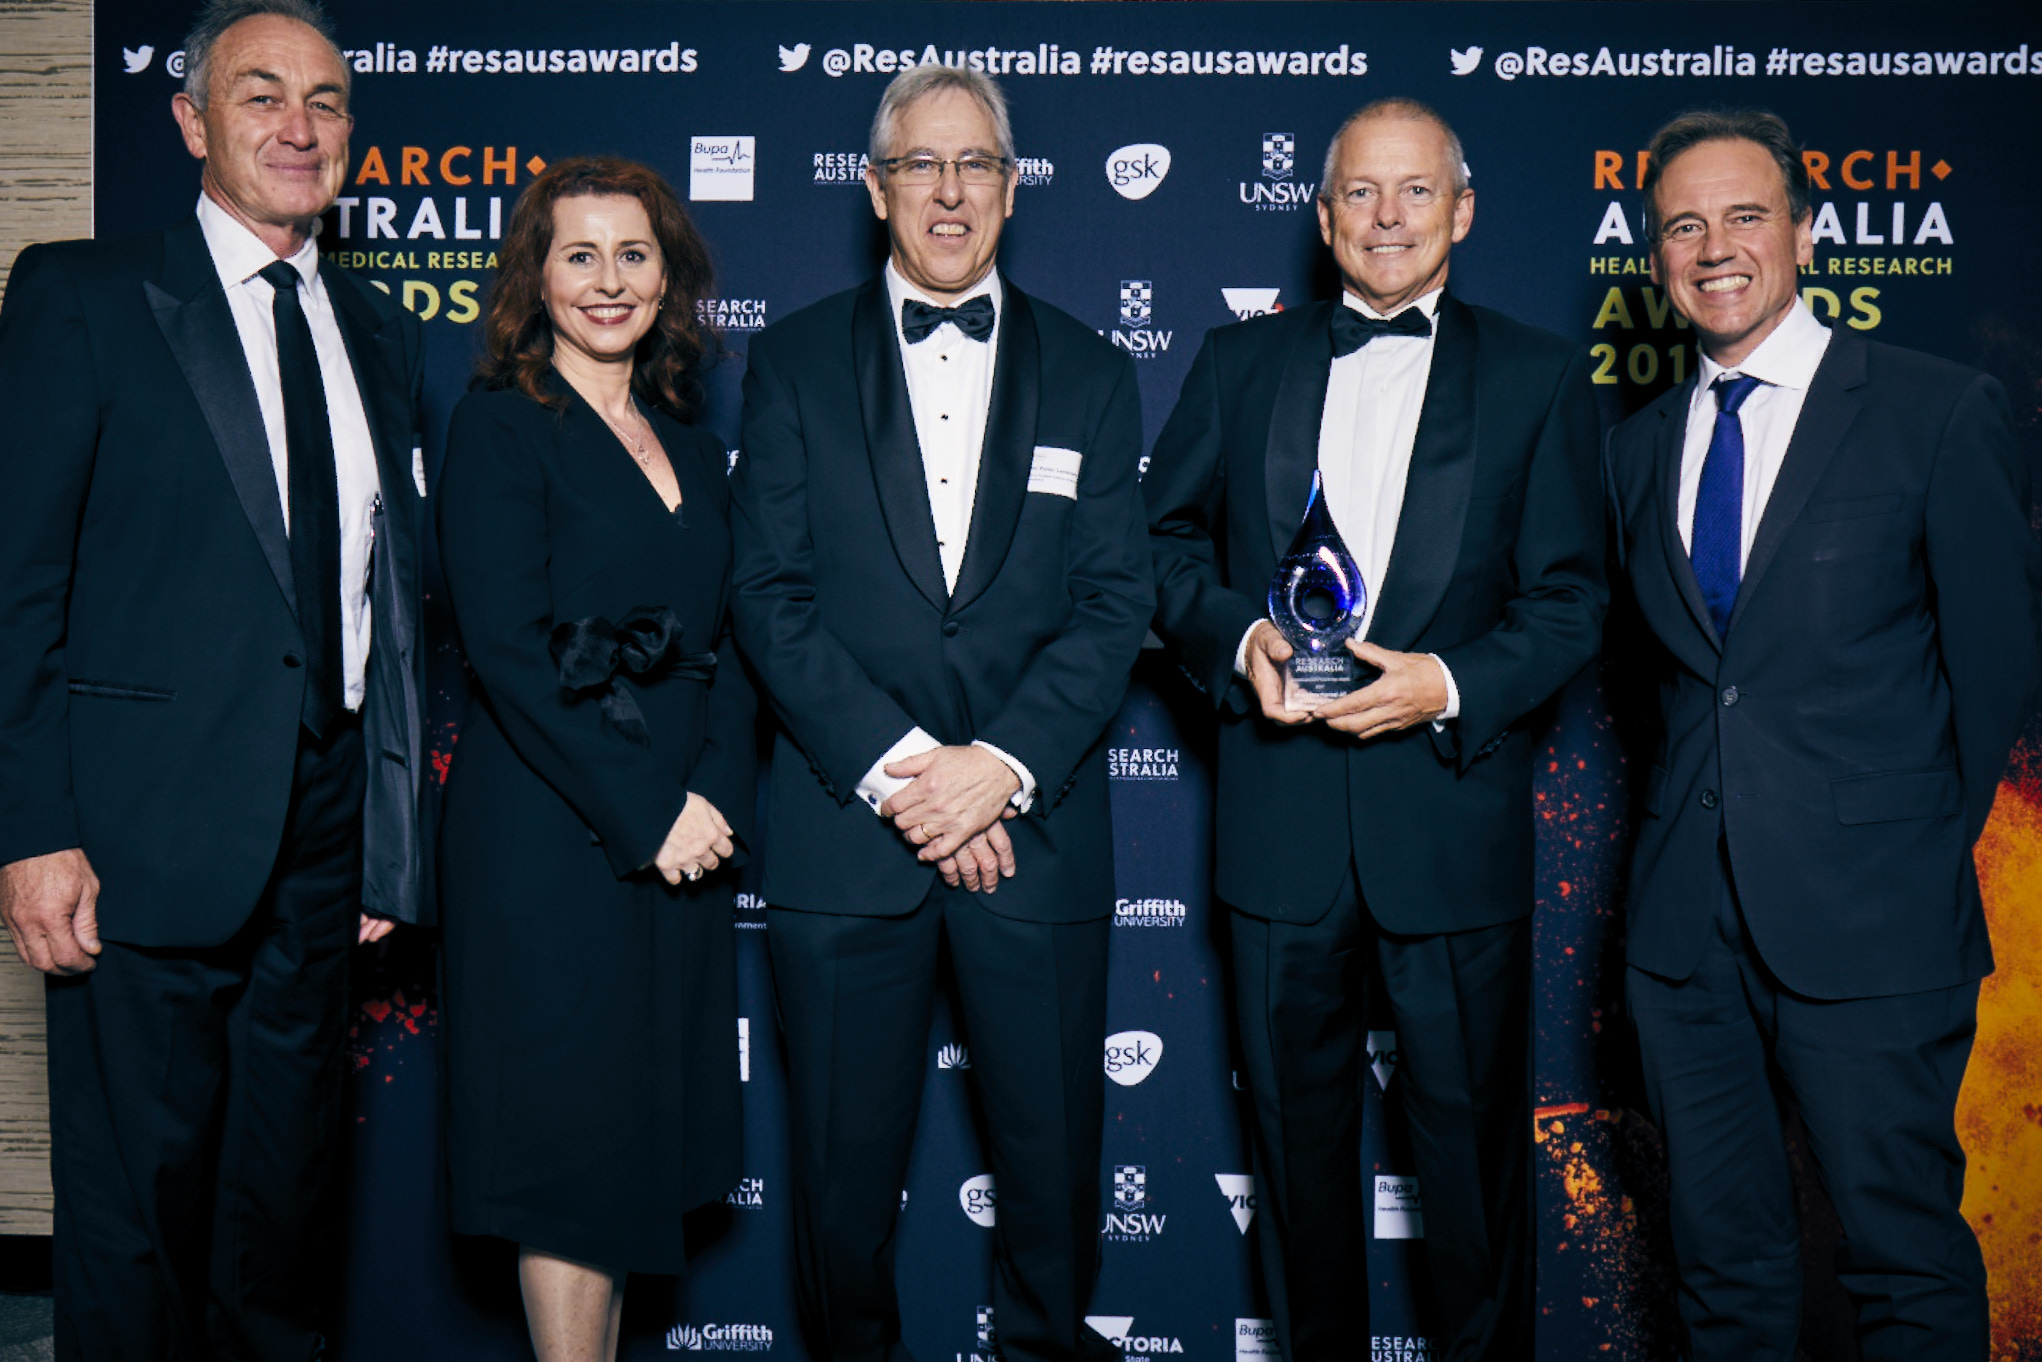 Nominations open for 2018 Research Australia Health and Medical Research Awards